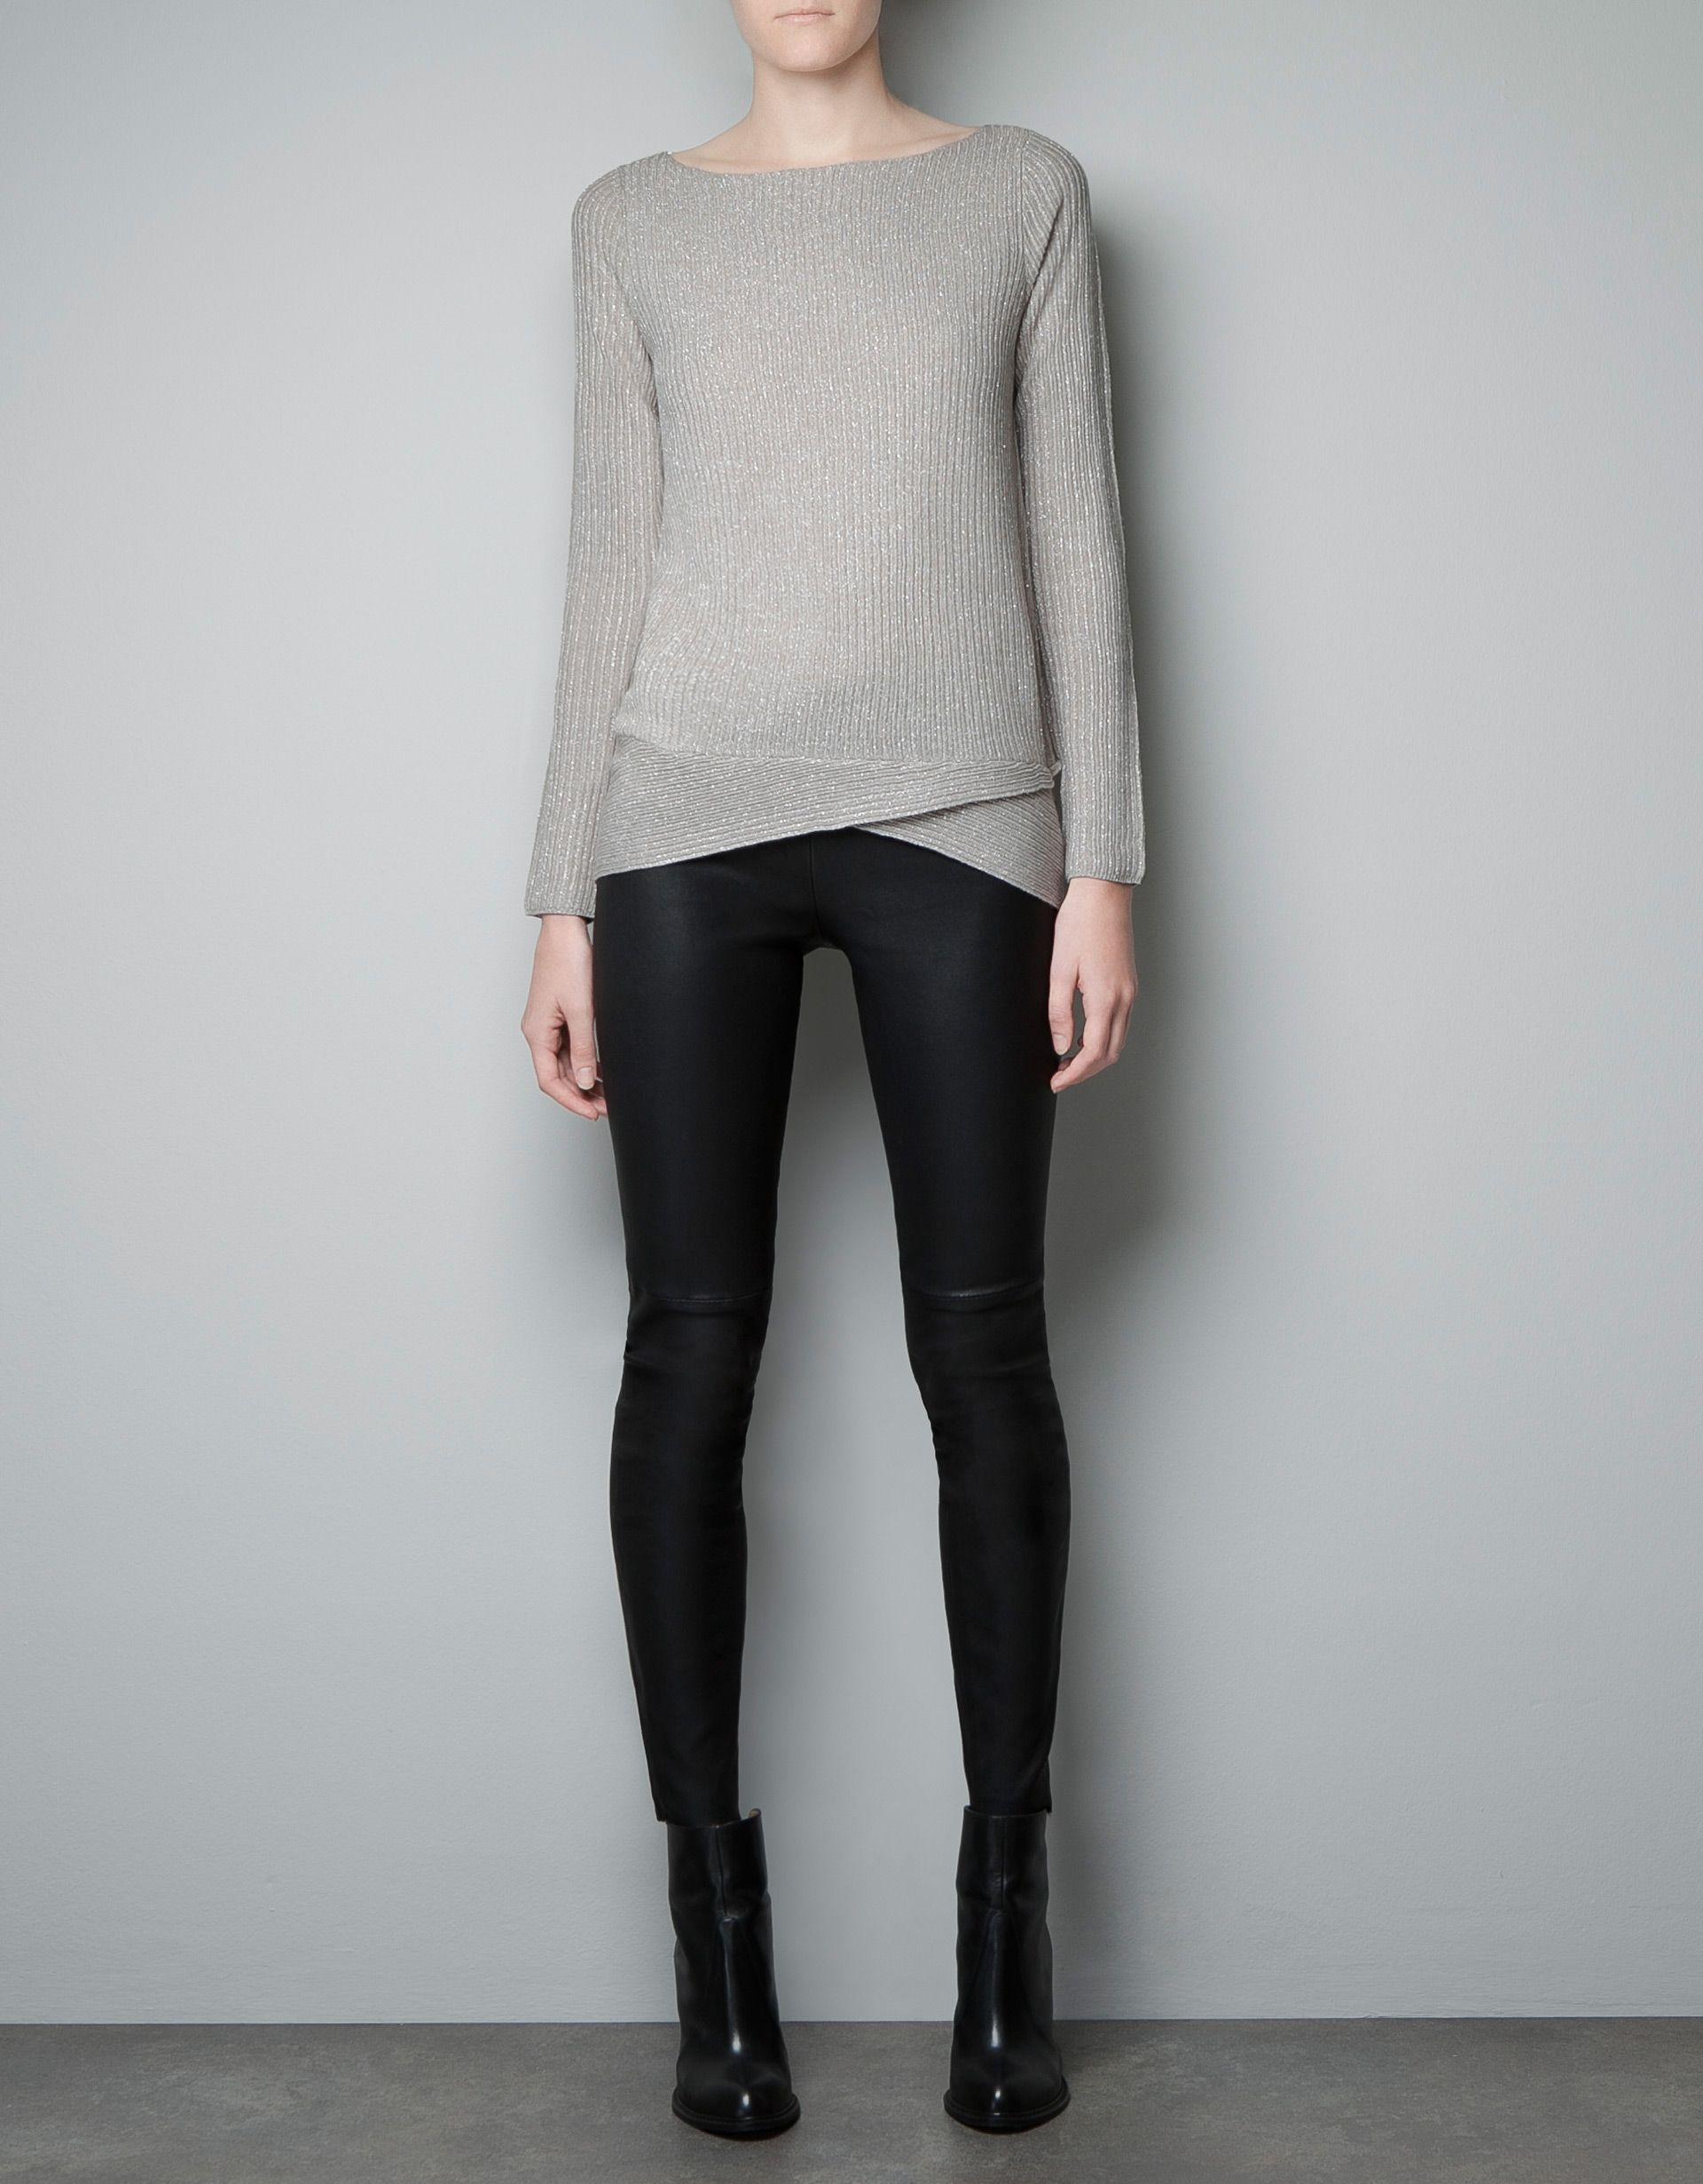 432b77adff2683 METALLIC RIB KNIT SWEATER WITH ASYMMETRIC HEM - Knitwear - Woman - ZARA  United States